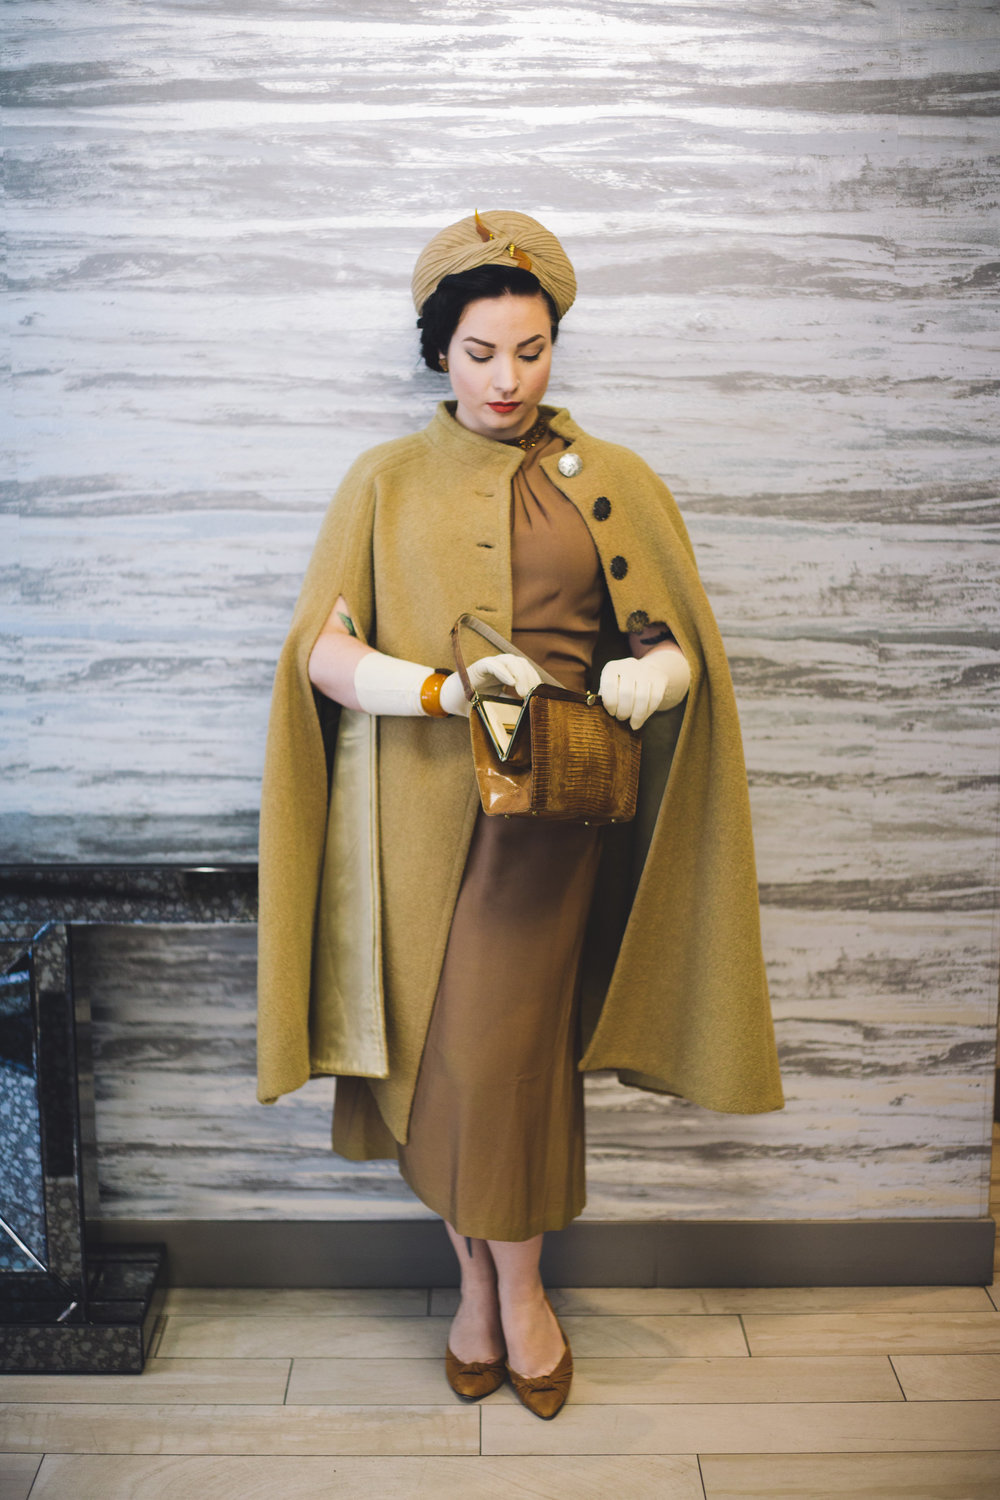 I did a little decade mixing here and there with this outfit. The turban, dress, and bag (lizard I think?) are all from the 40s. The cape and gloves are 60s, the shoes are 80s, and the celluloid hat pin is 30s. I LOVE the way they all go together.